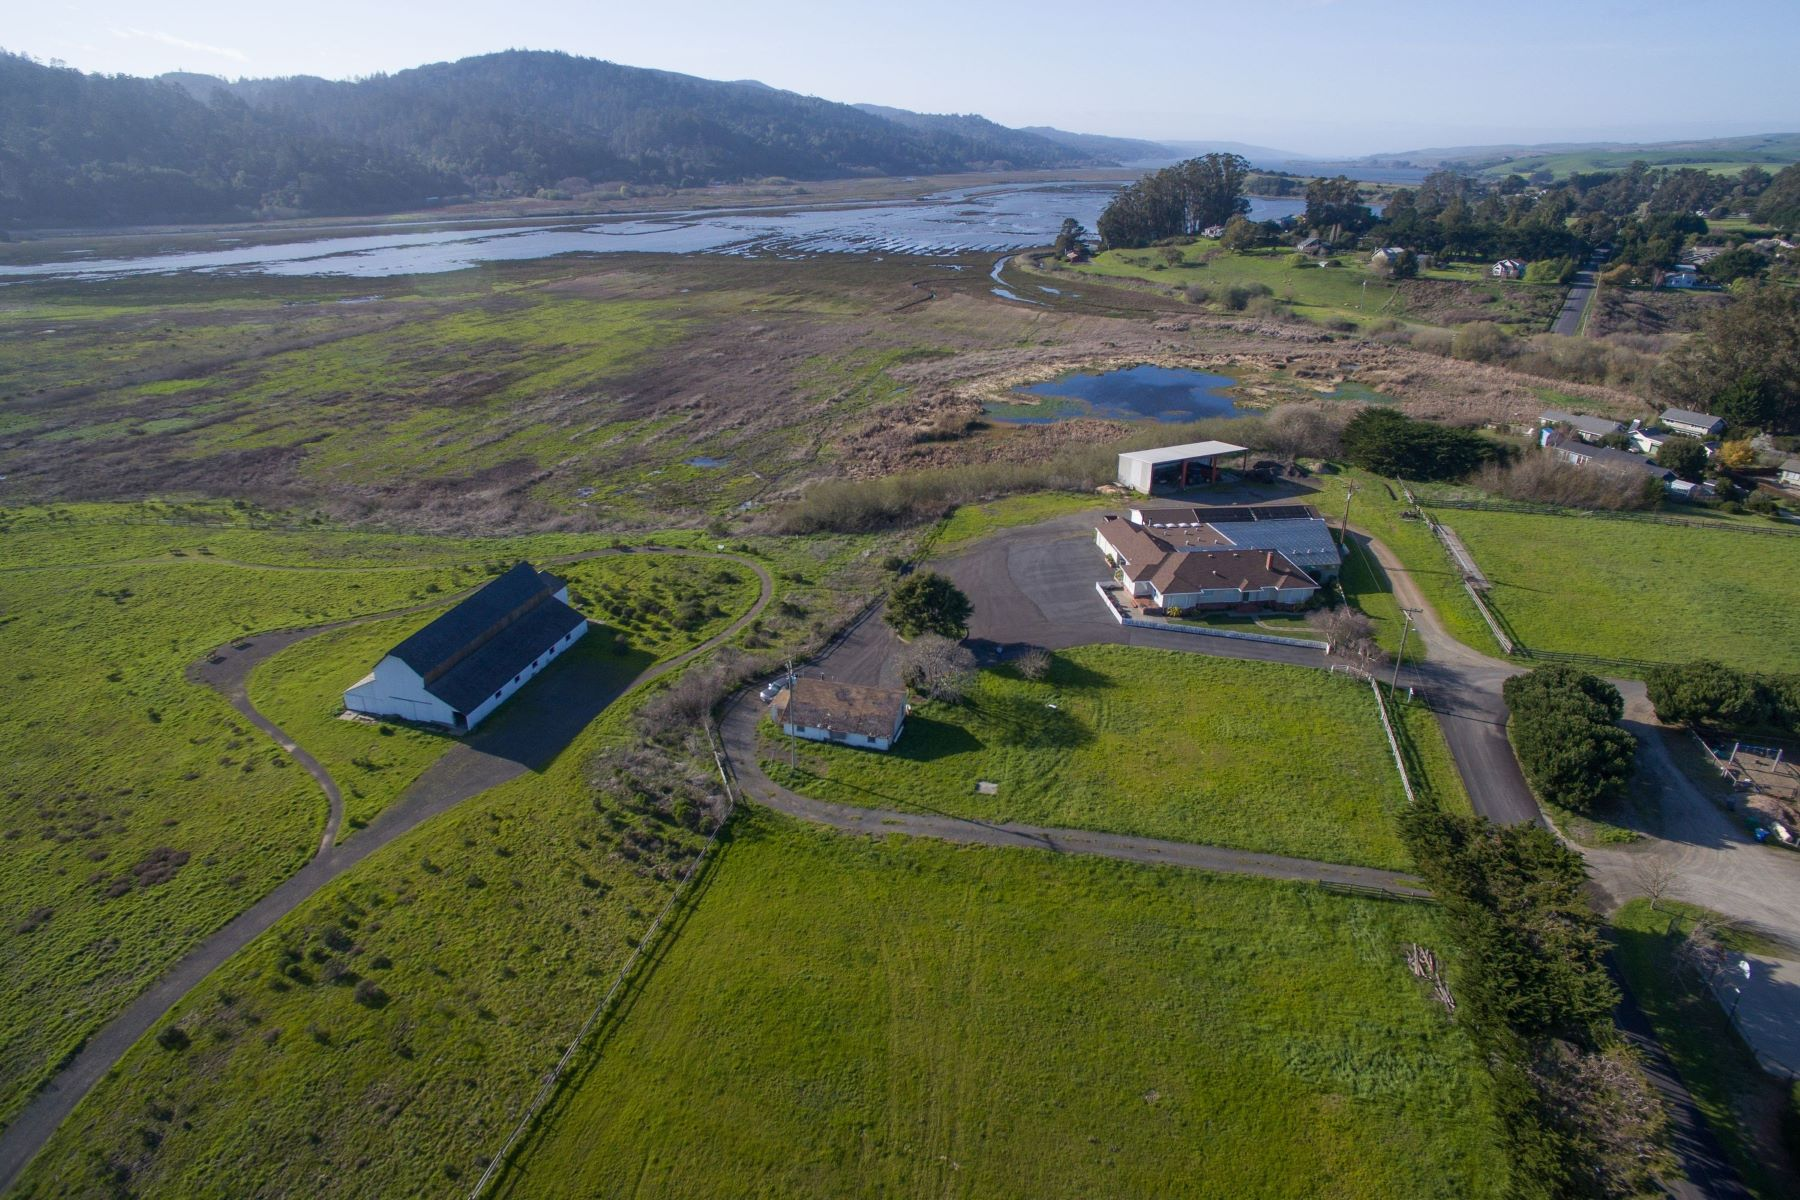 Single Family Home for Sale at Iconic West Marin Property 701 C Street Point Reyes Station, California 94956 United States